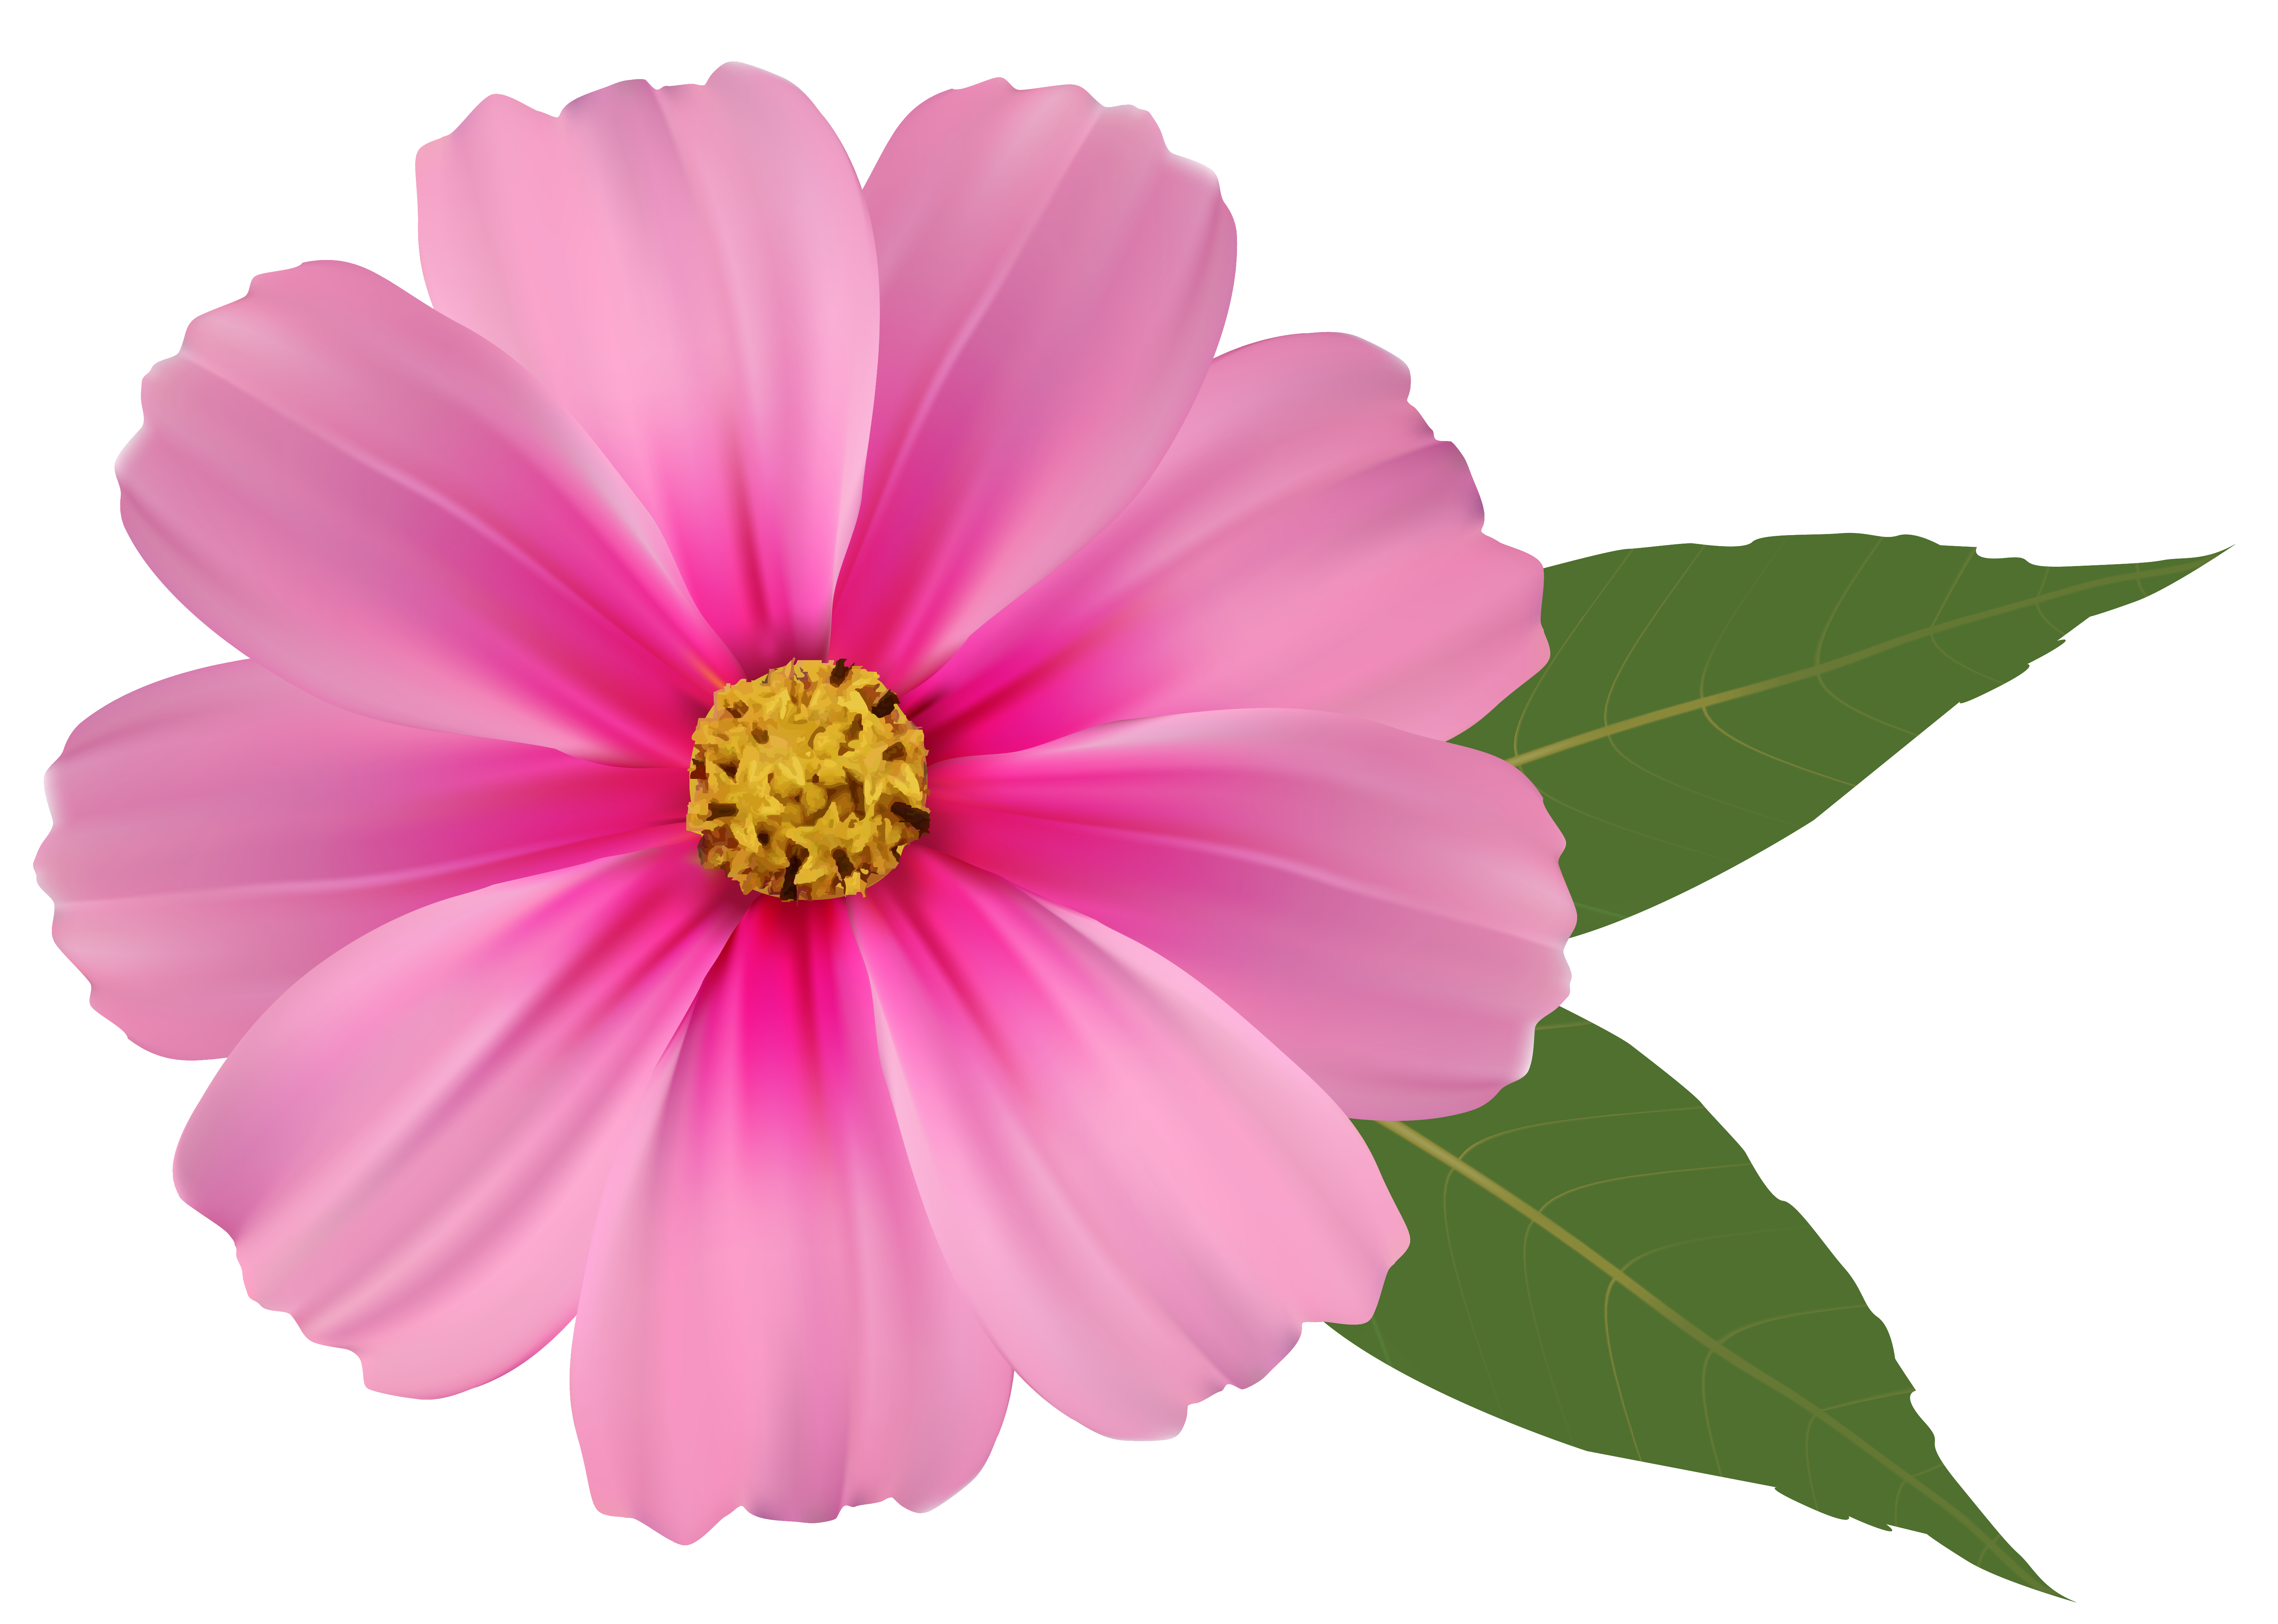 Pink Flower PNG Image Clipart.